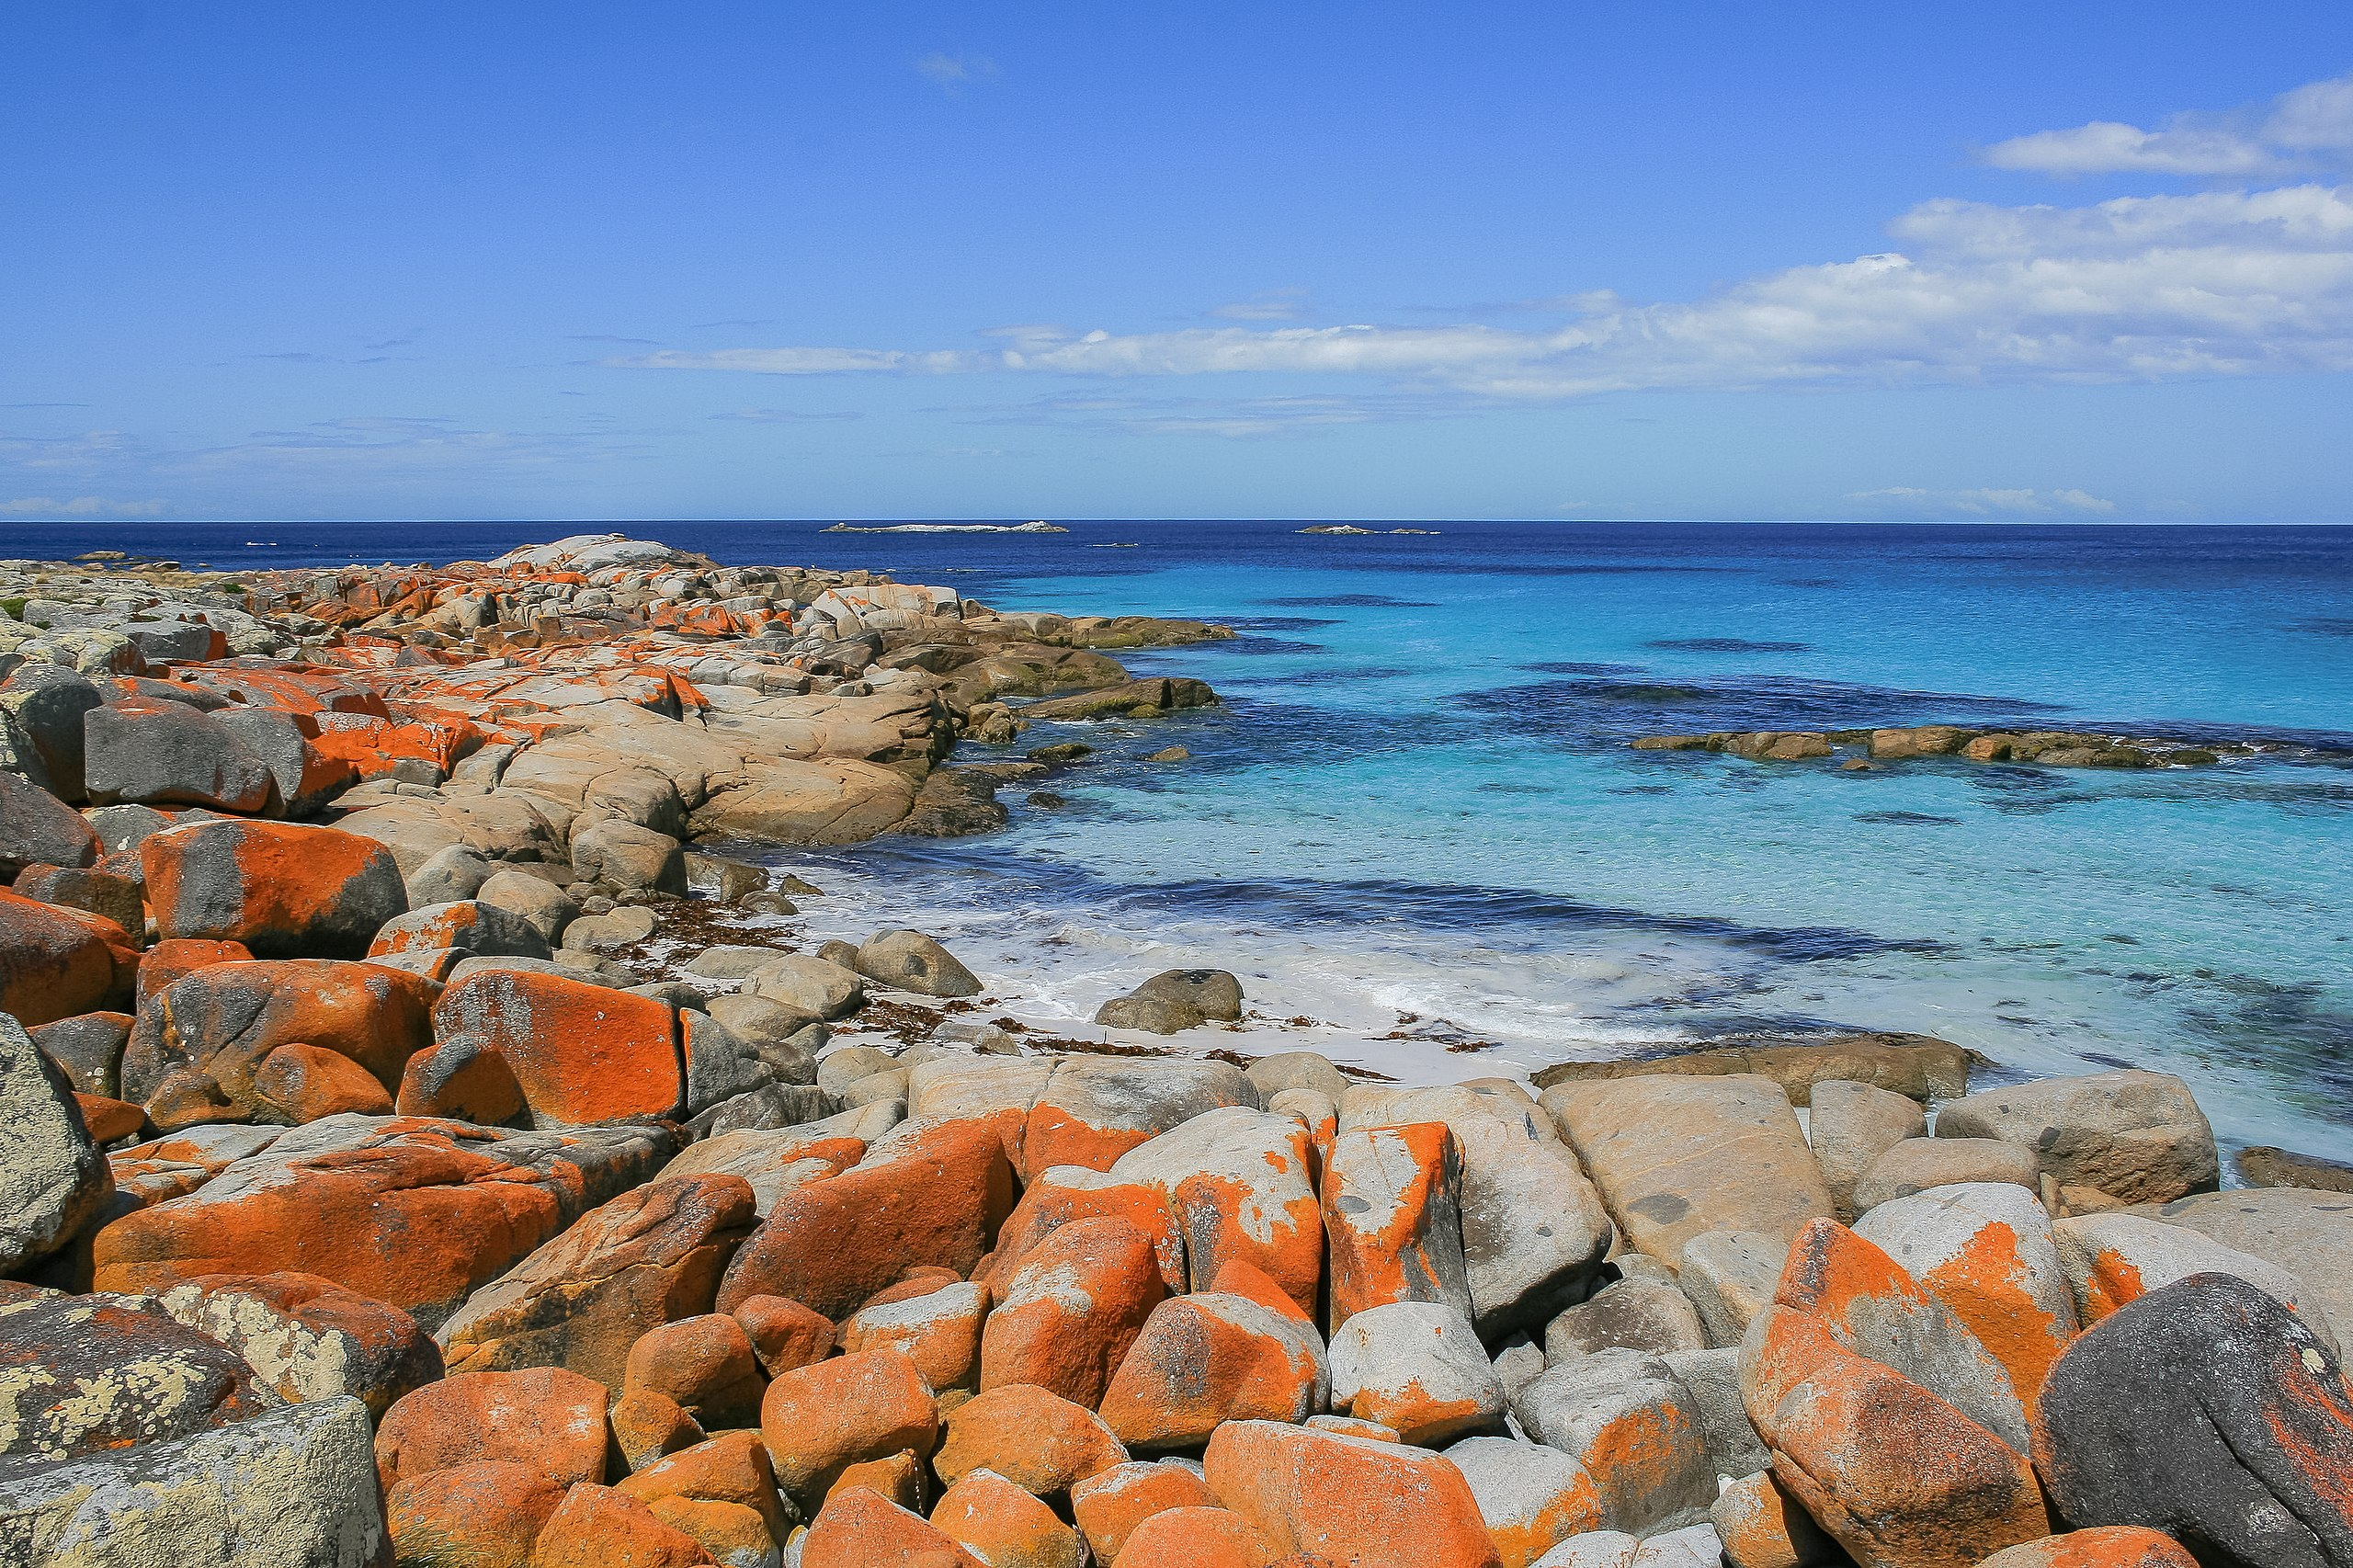 The stunning orange rocks at the Bay of Fires.